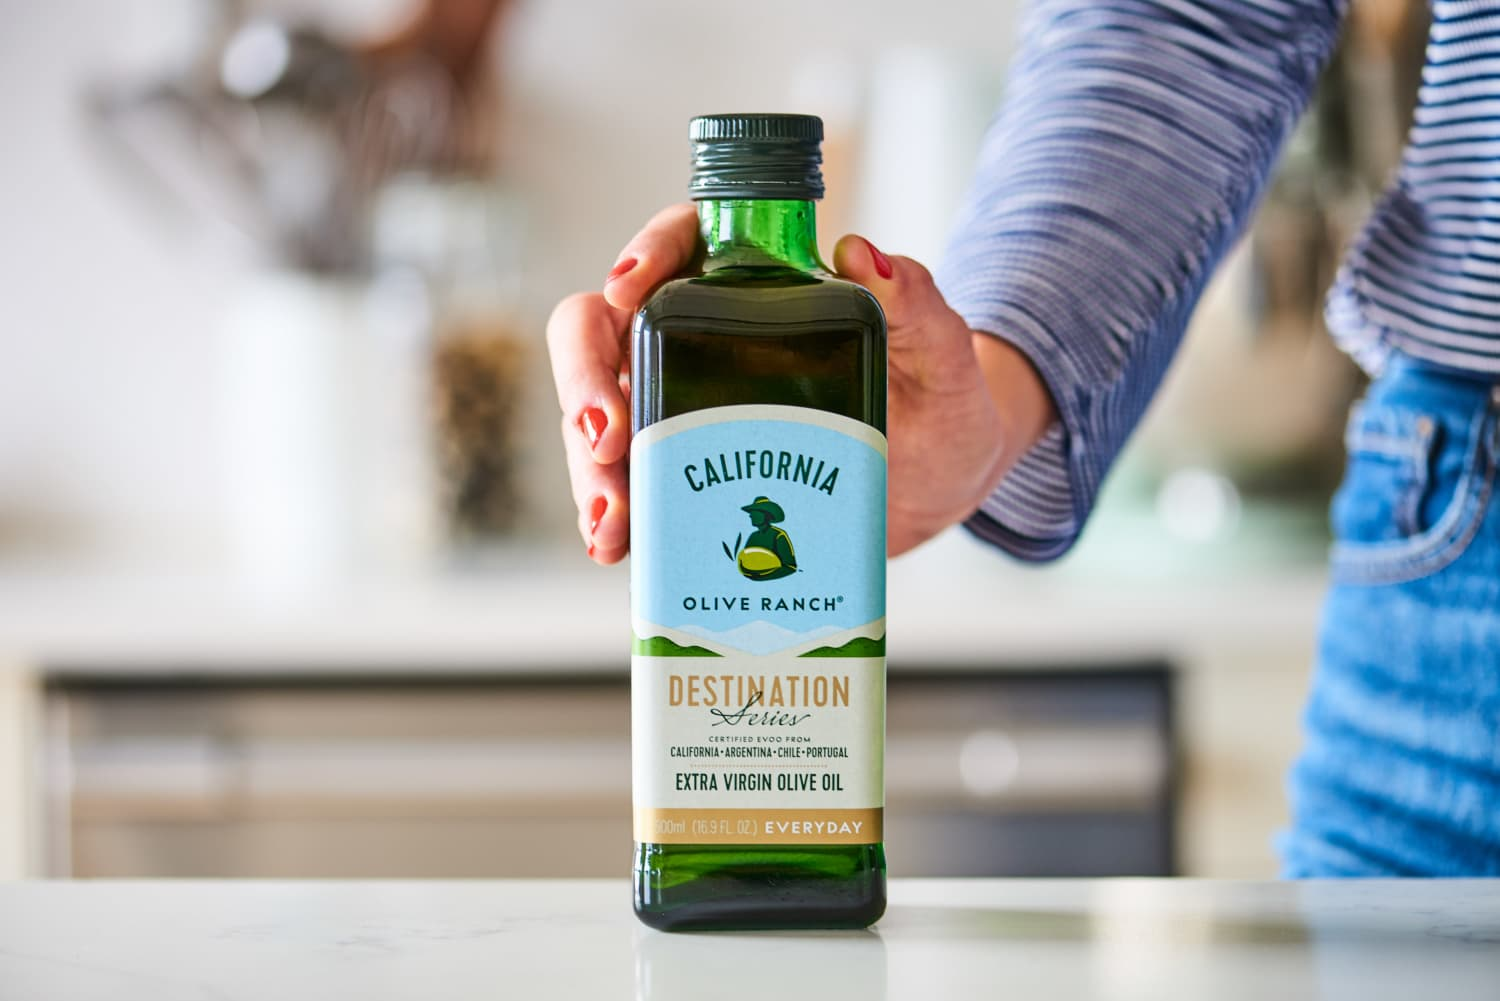 The First Thing Everyone Should Do with a New Bottle of Olive Oil